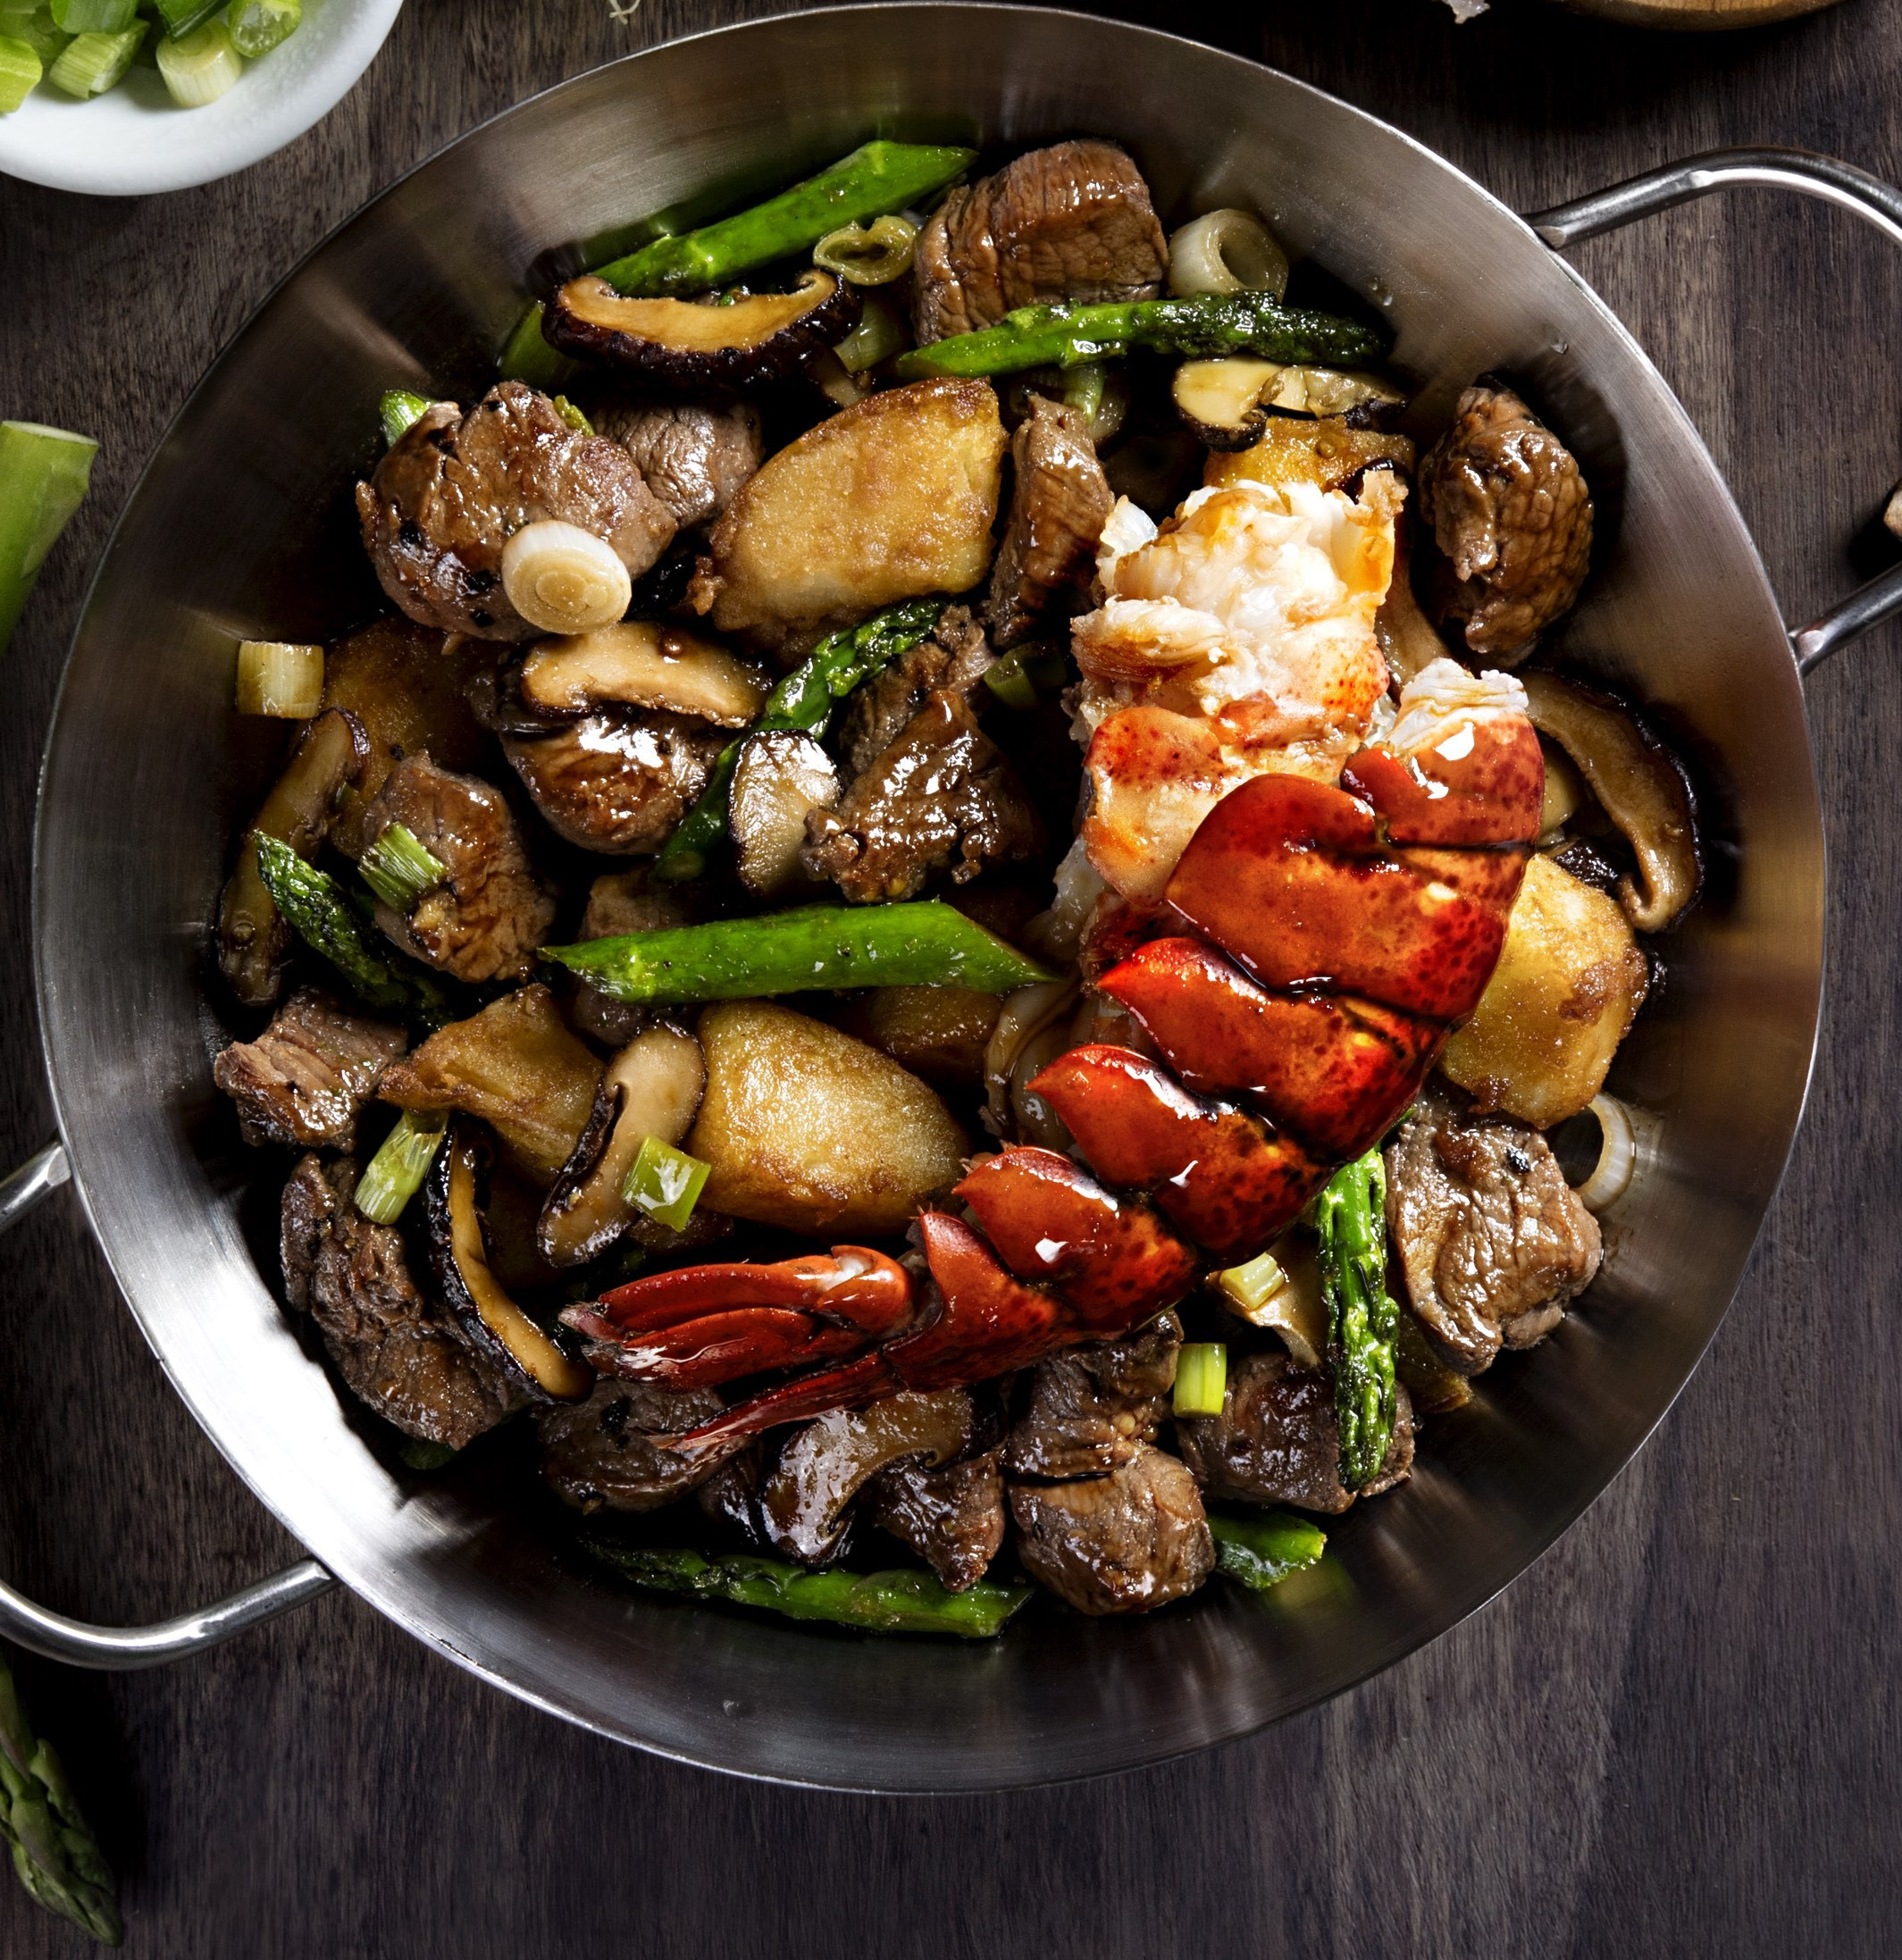 Surf En Turf >> P.F. Chang's Introduces New Fall Menu across U.S. Today | Business Wire